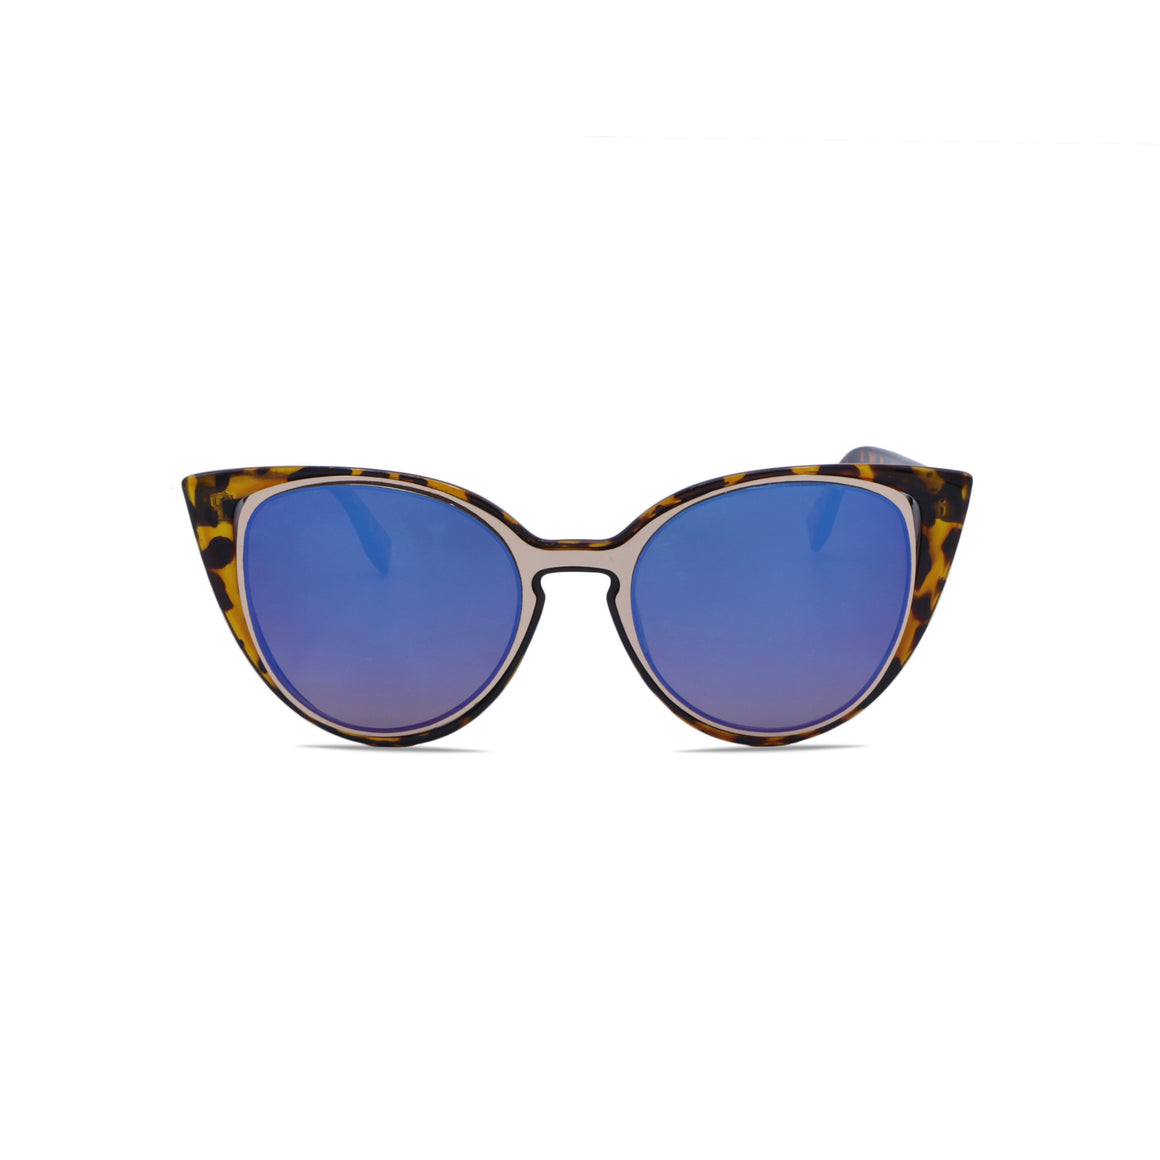 Retro Cat Eye Sunglasses in Leopard & Mirrored Blue Color